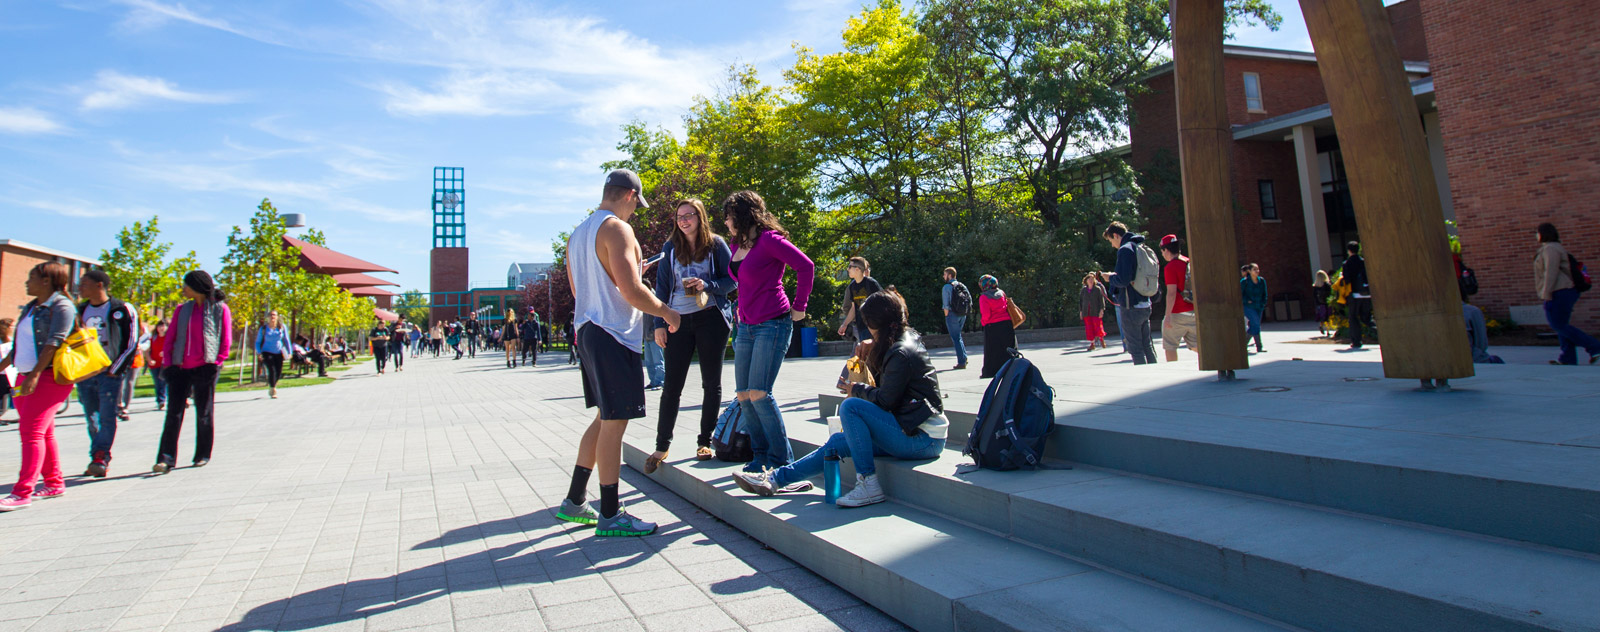 the sfu undergraduate admissions office will not accept late applications